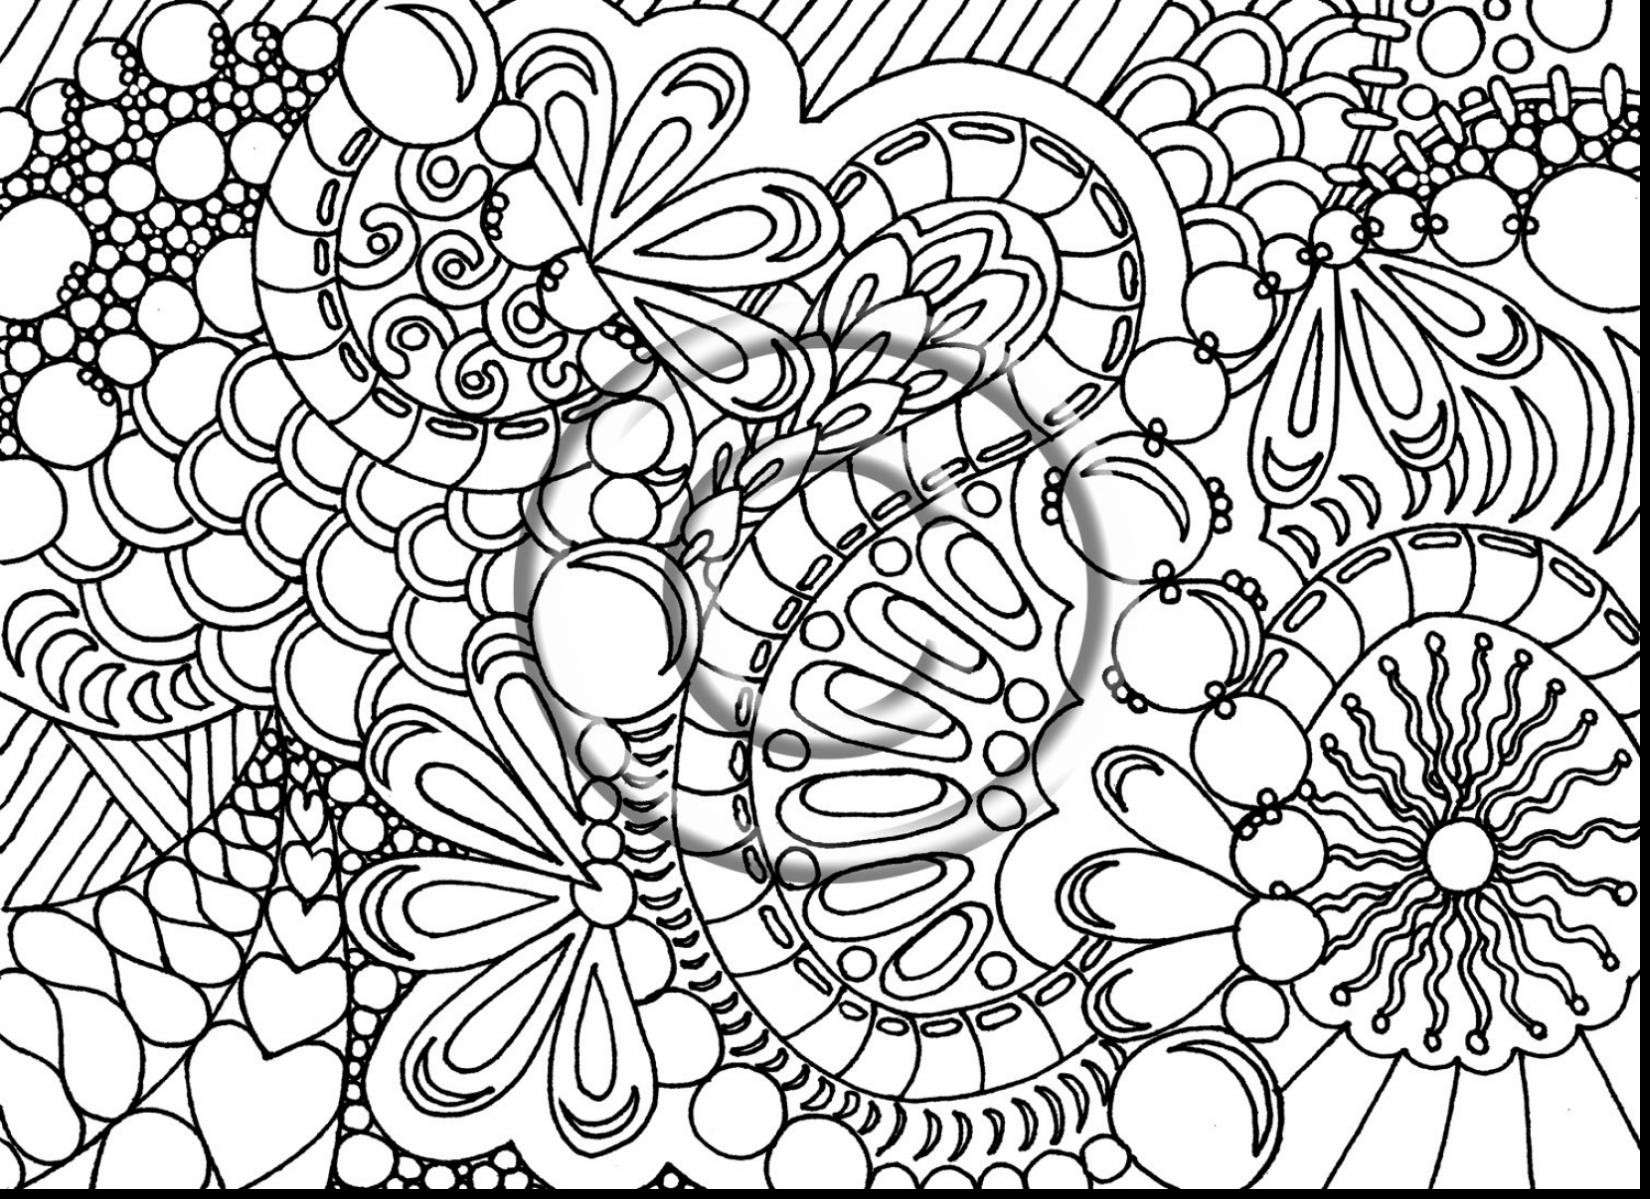 Difficult Christmas Coloring Pages For Adults With To Print Free Printable Hard